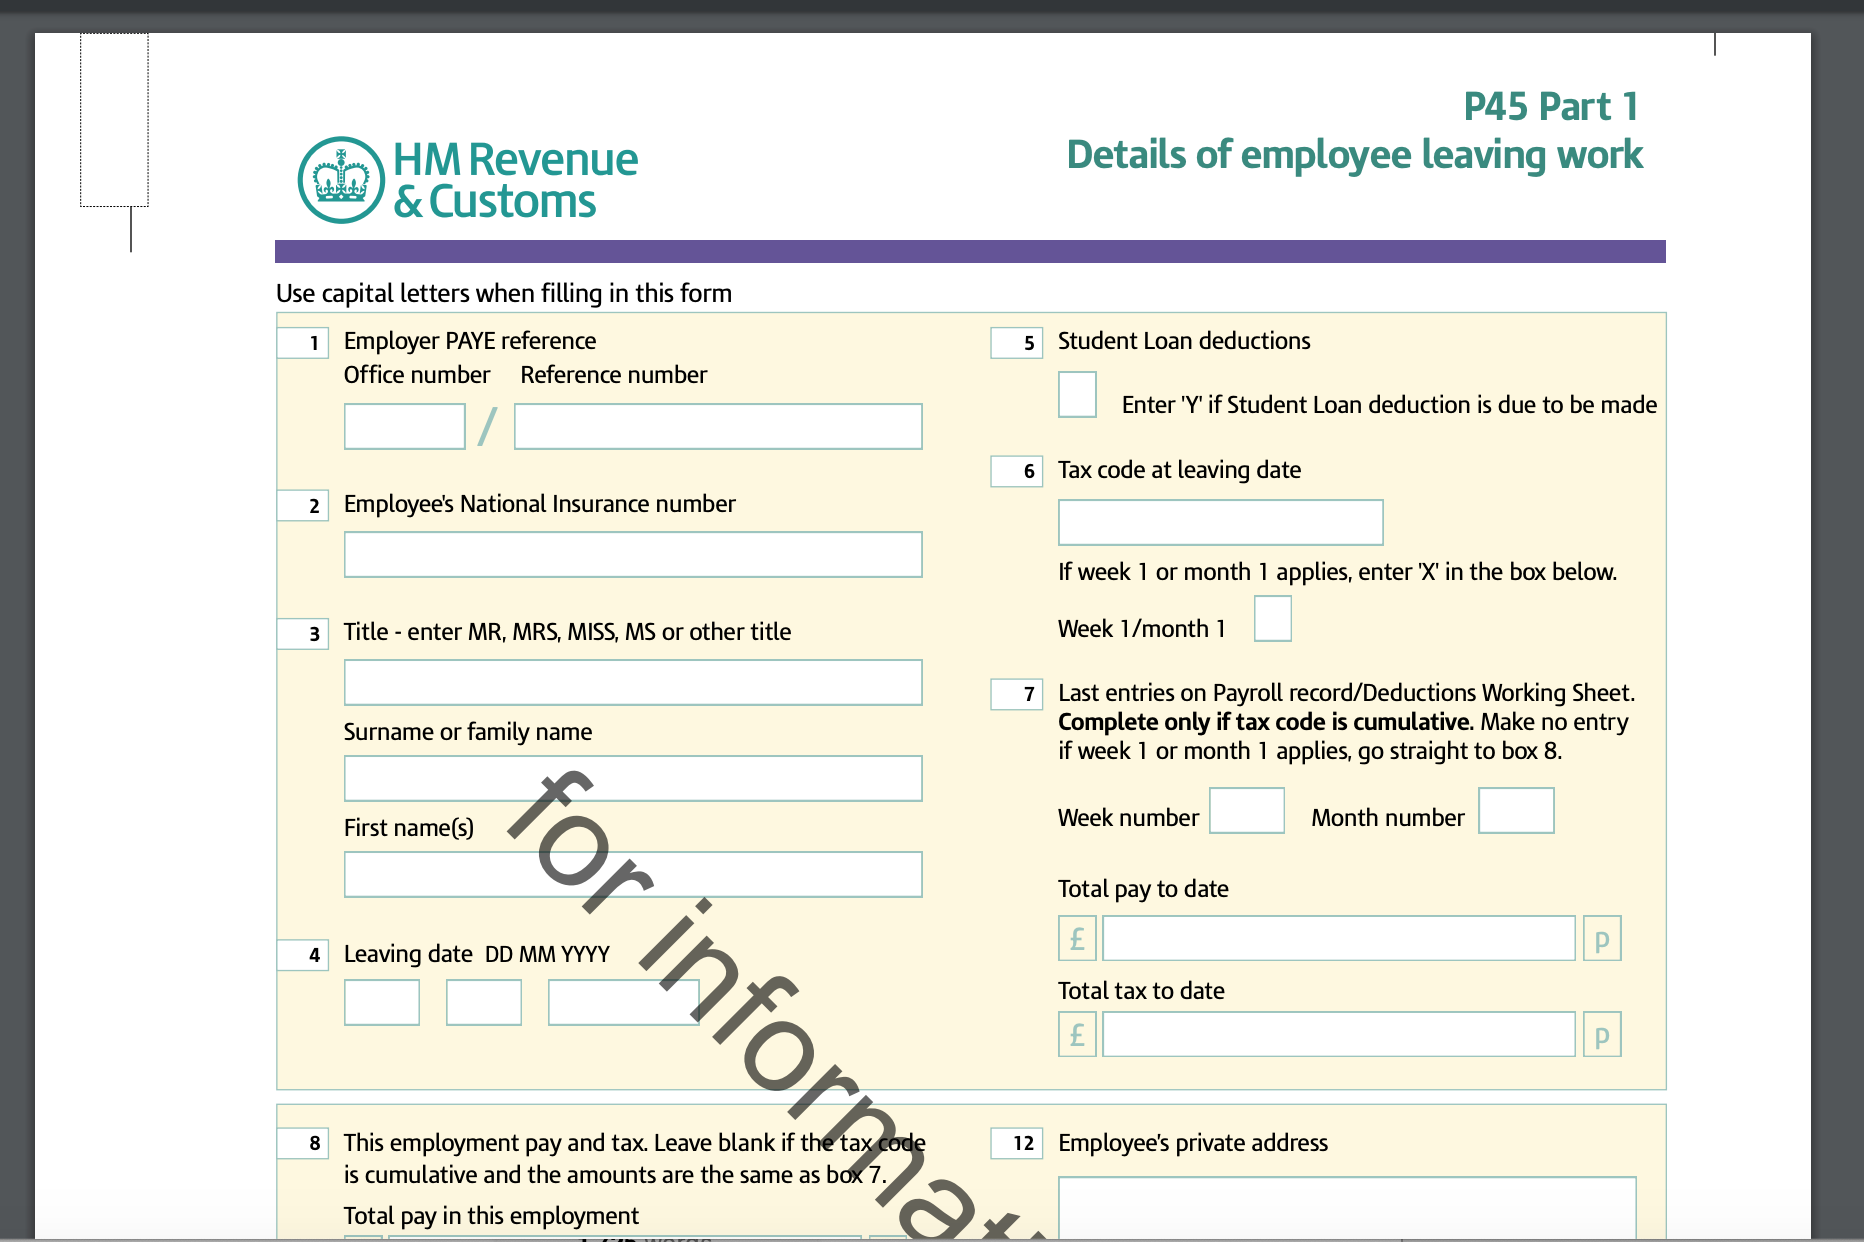 P45 form from HMRC